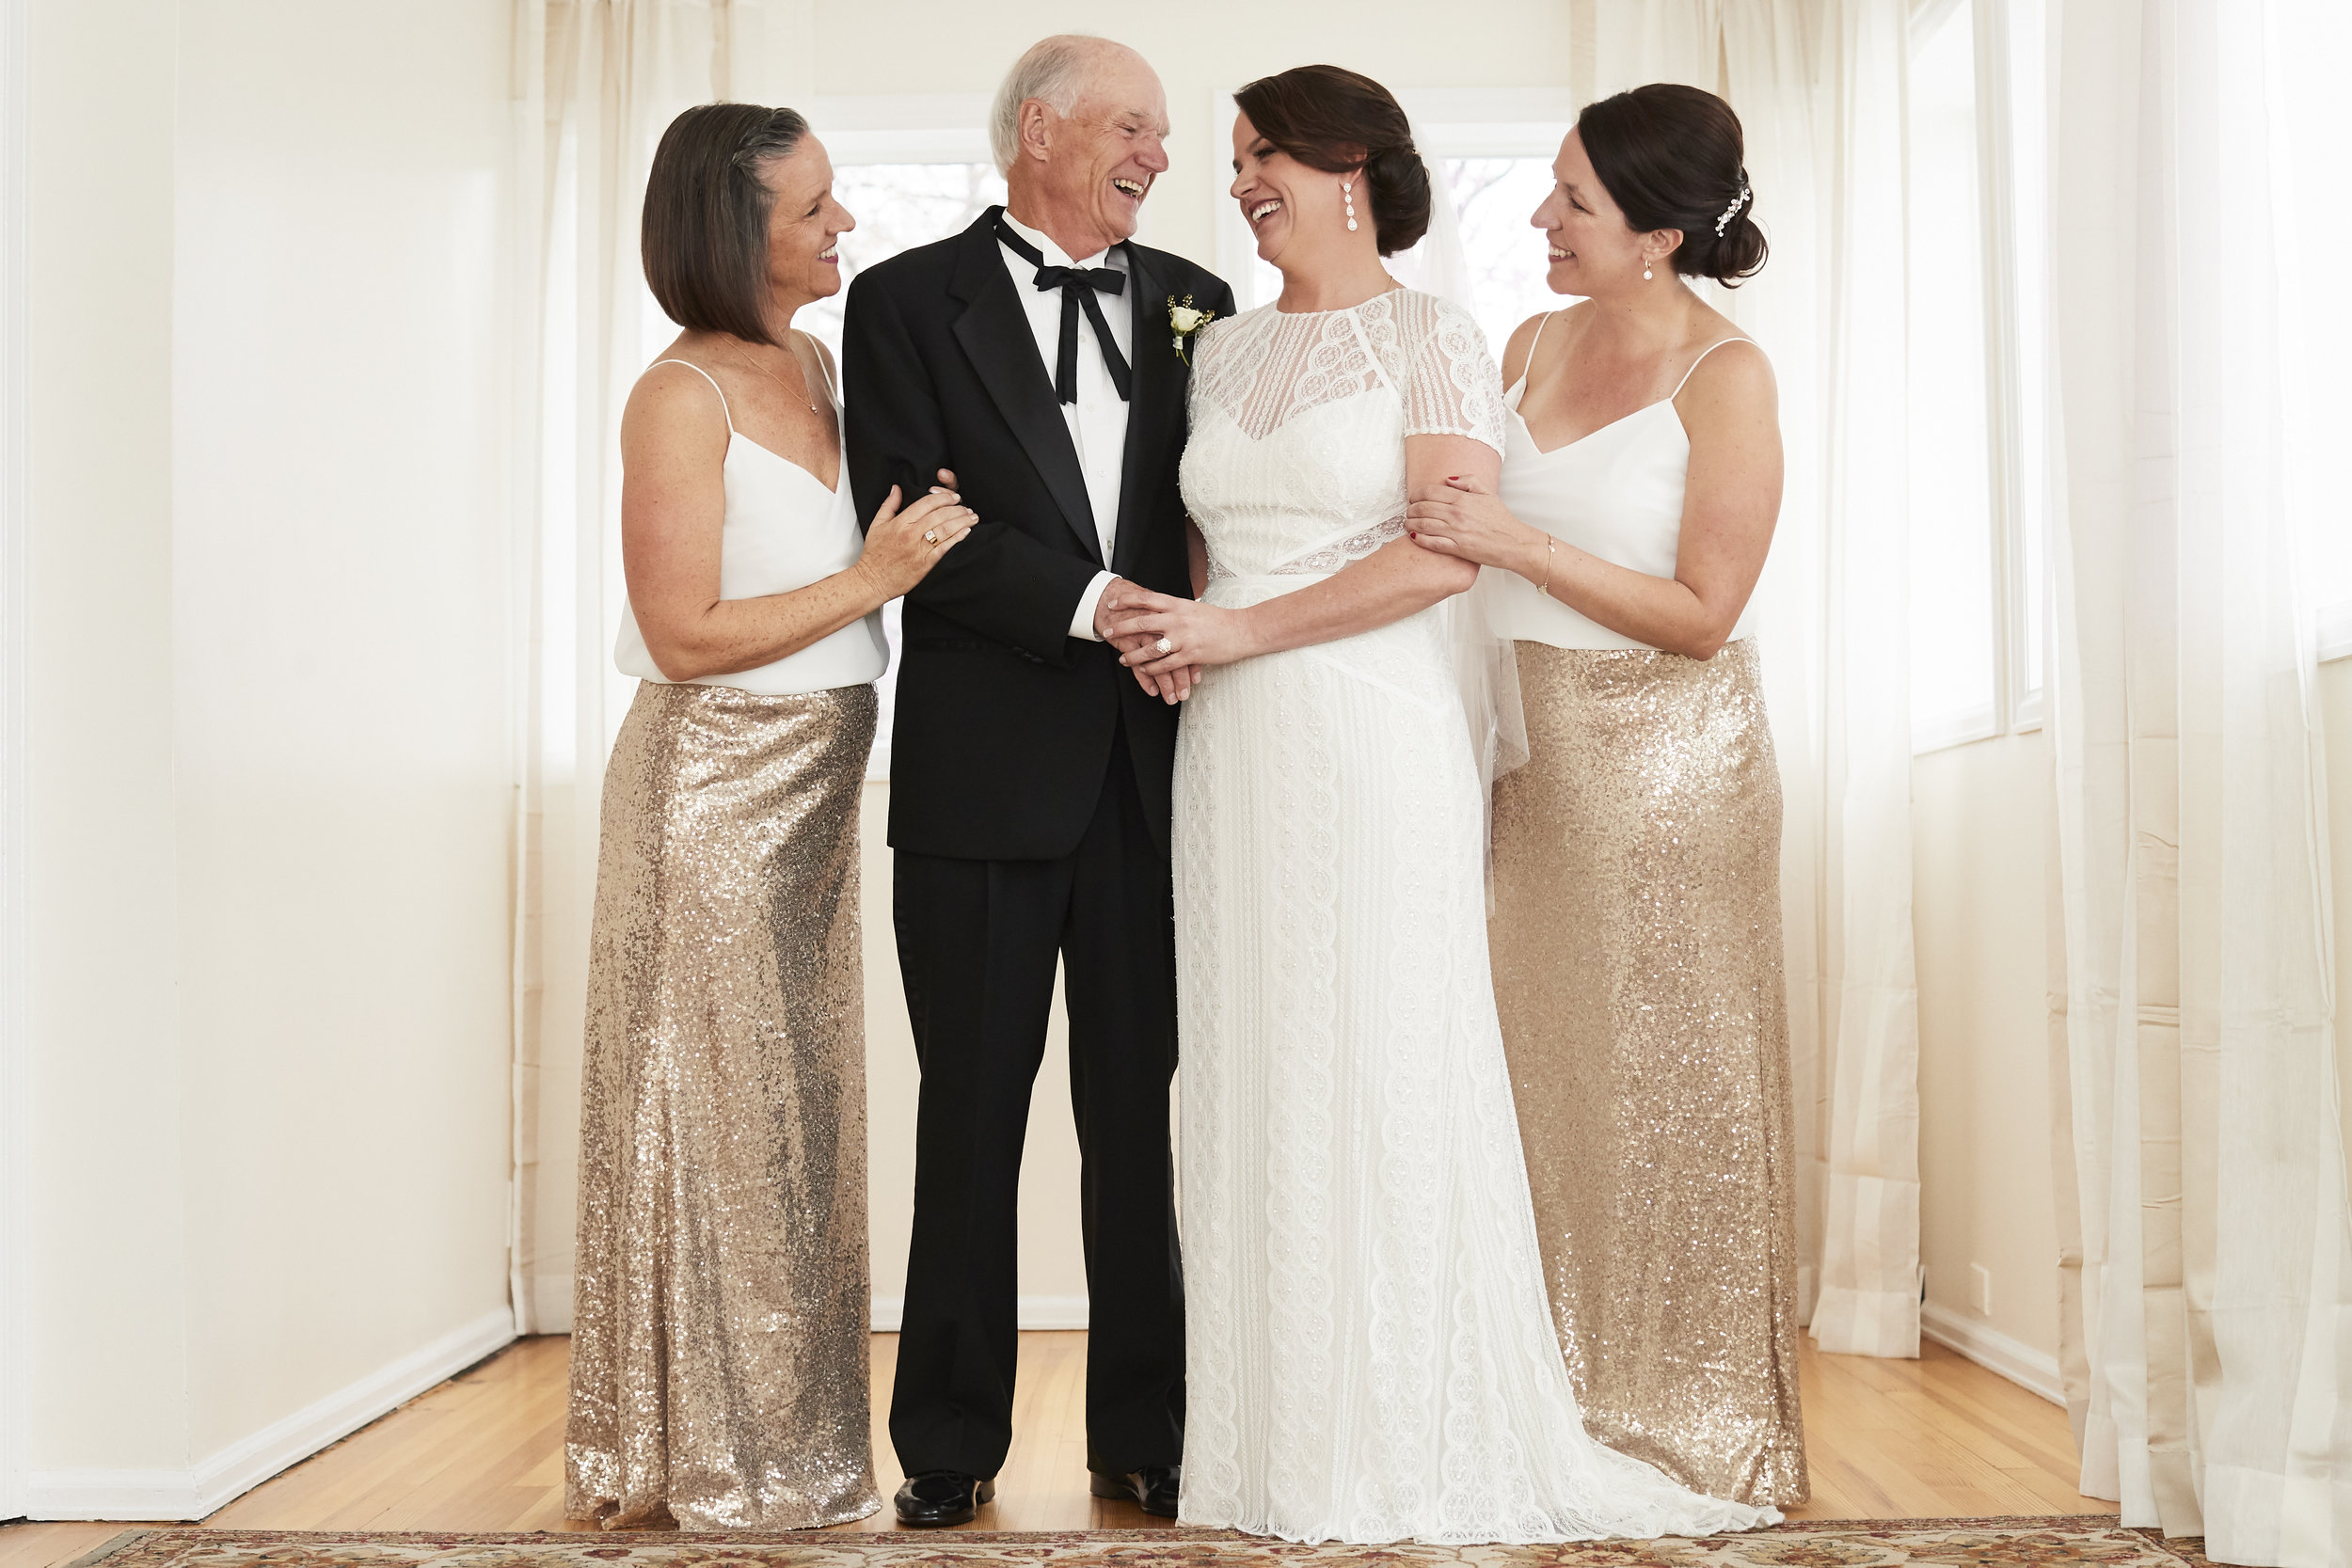 During the Wedding - On your wedding day, our strengths in communication and organization allow you to relax and enjoy your special moments. CliftonMarie will be personable and will encourage natural expressions from you and your family. Stale family photos are not our thing!